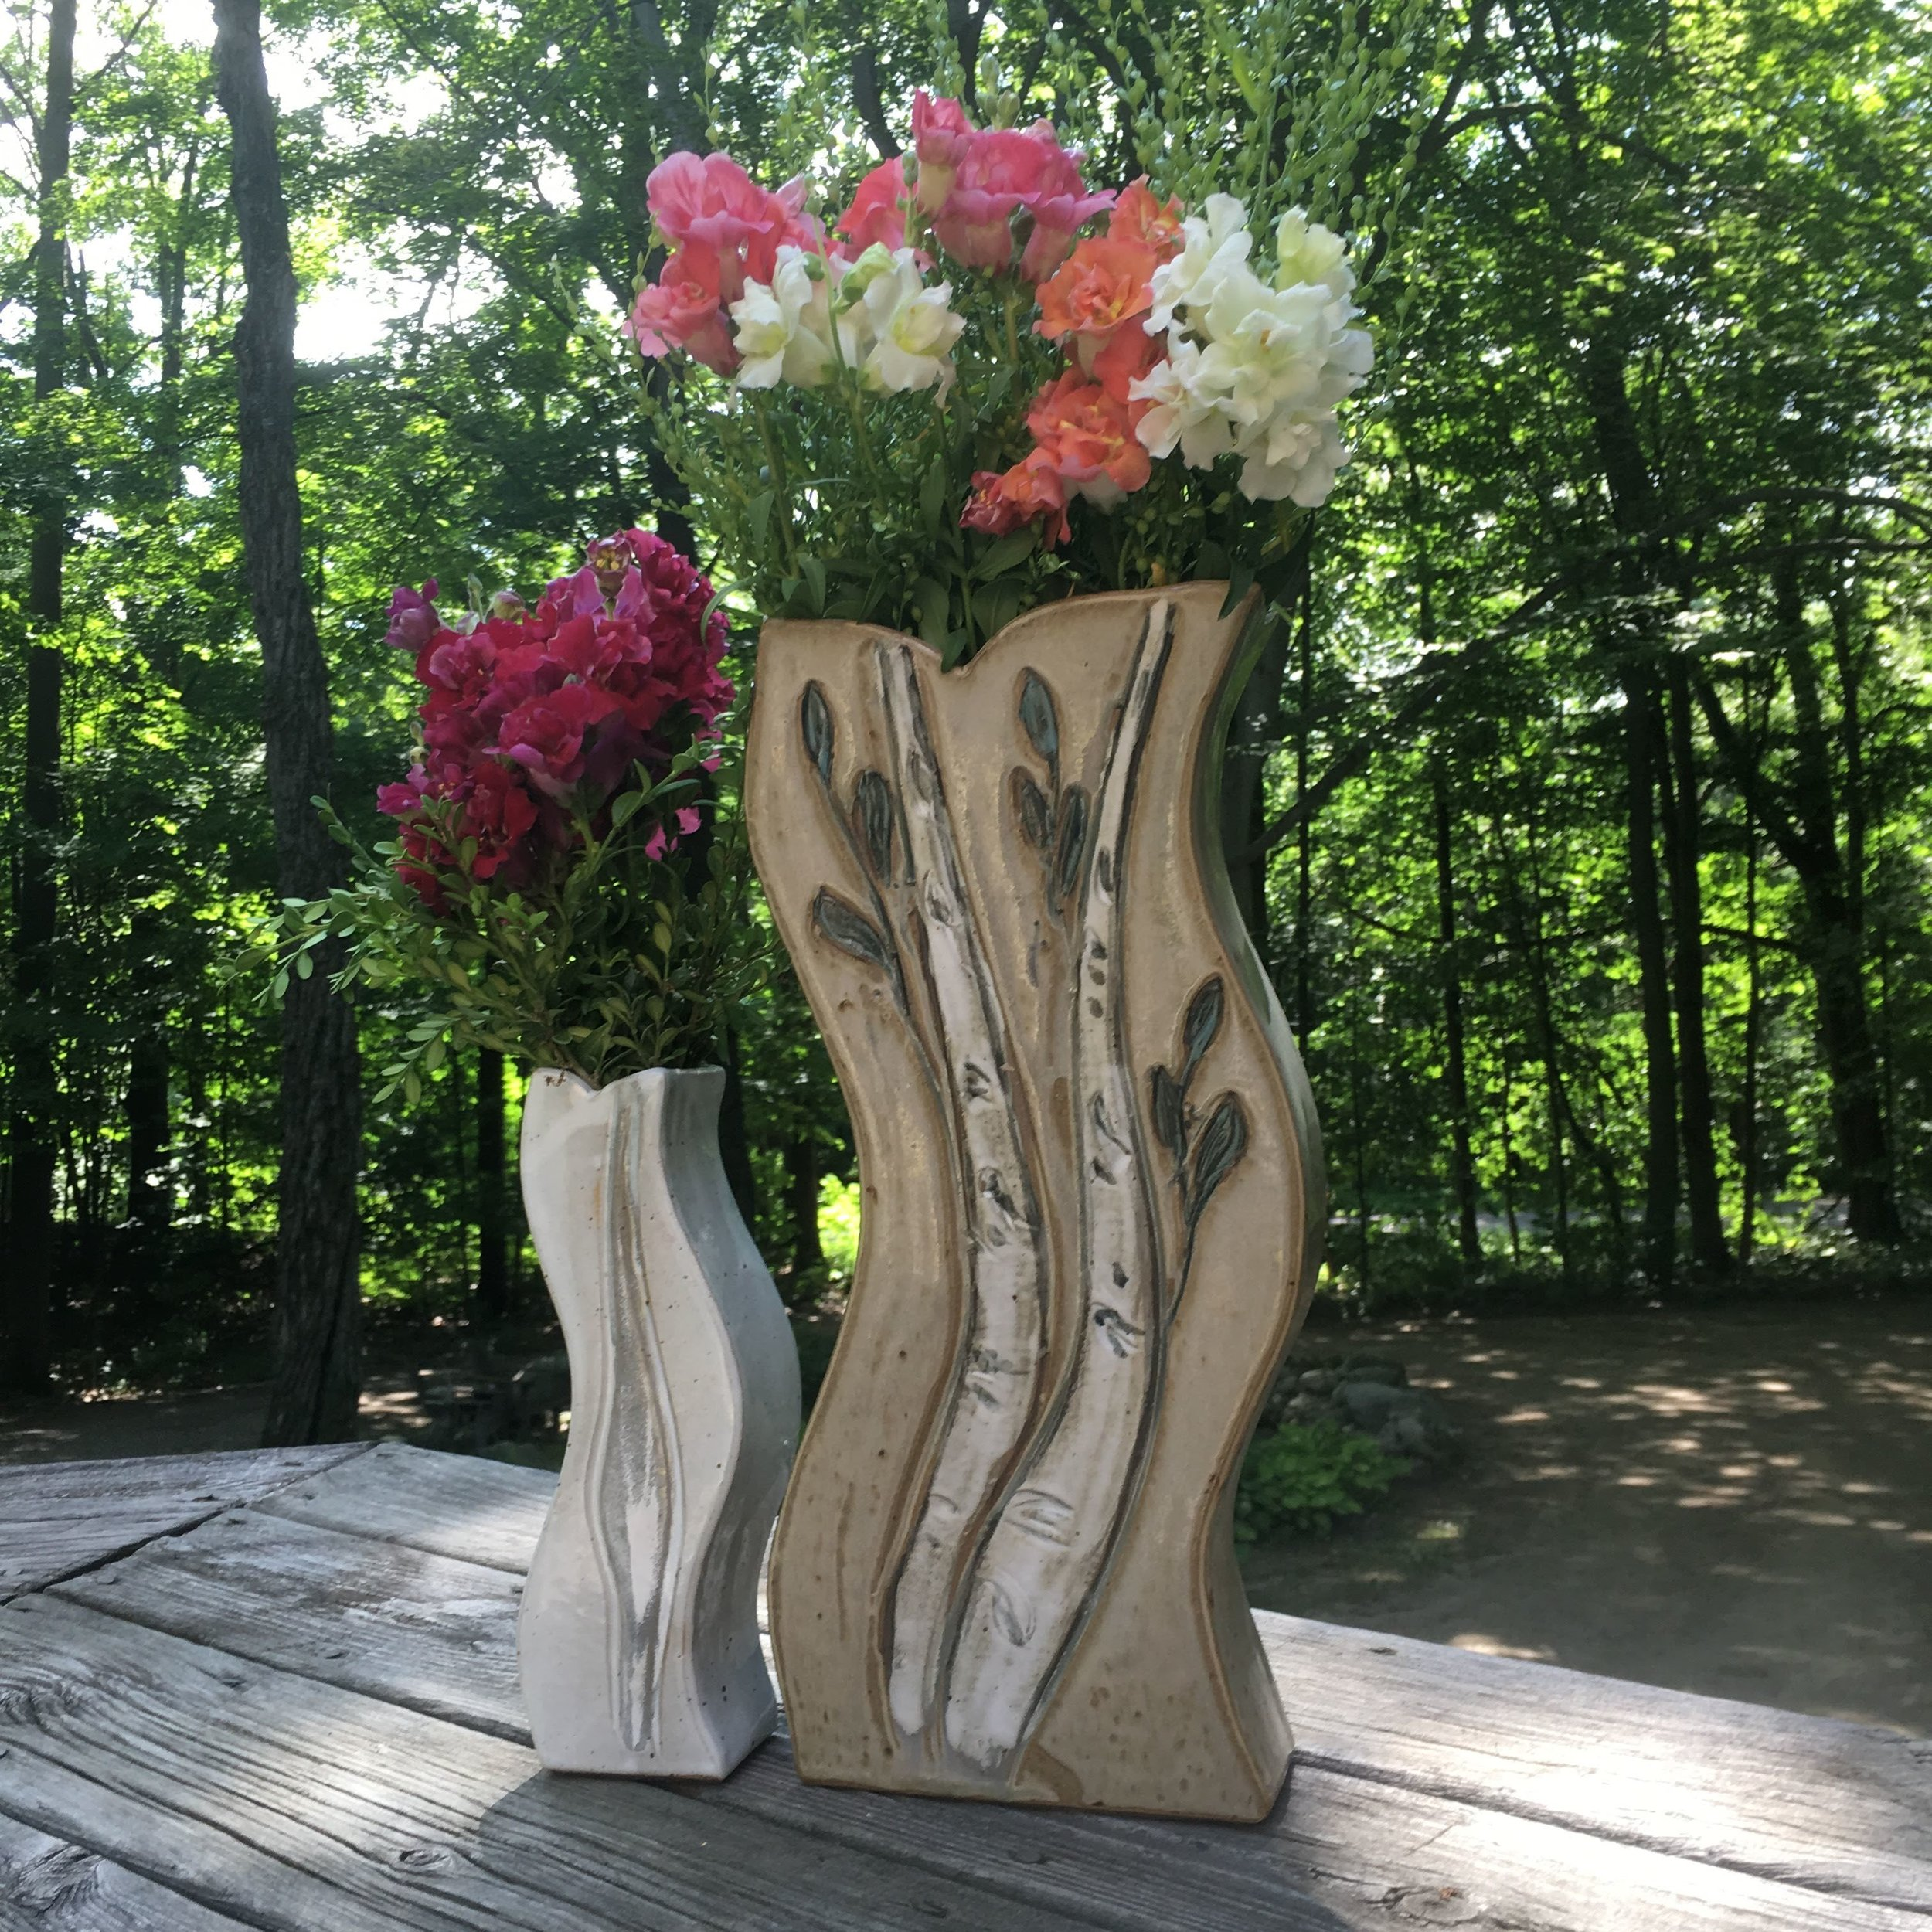 VASES - Starting at $28, each home and occasion calls for a unique style of vase. Inspired by locally grown flowers, we hand-piece and wheel-throw vases of all sizes and shapes.